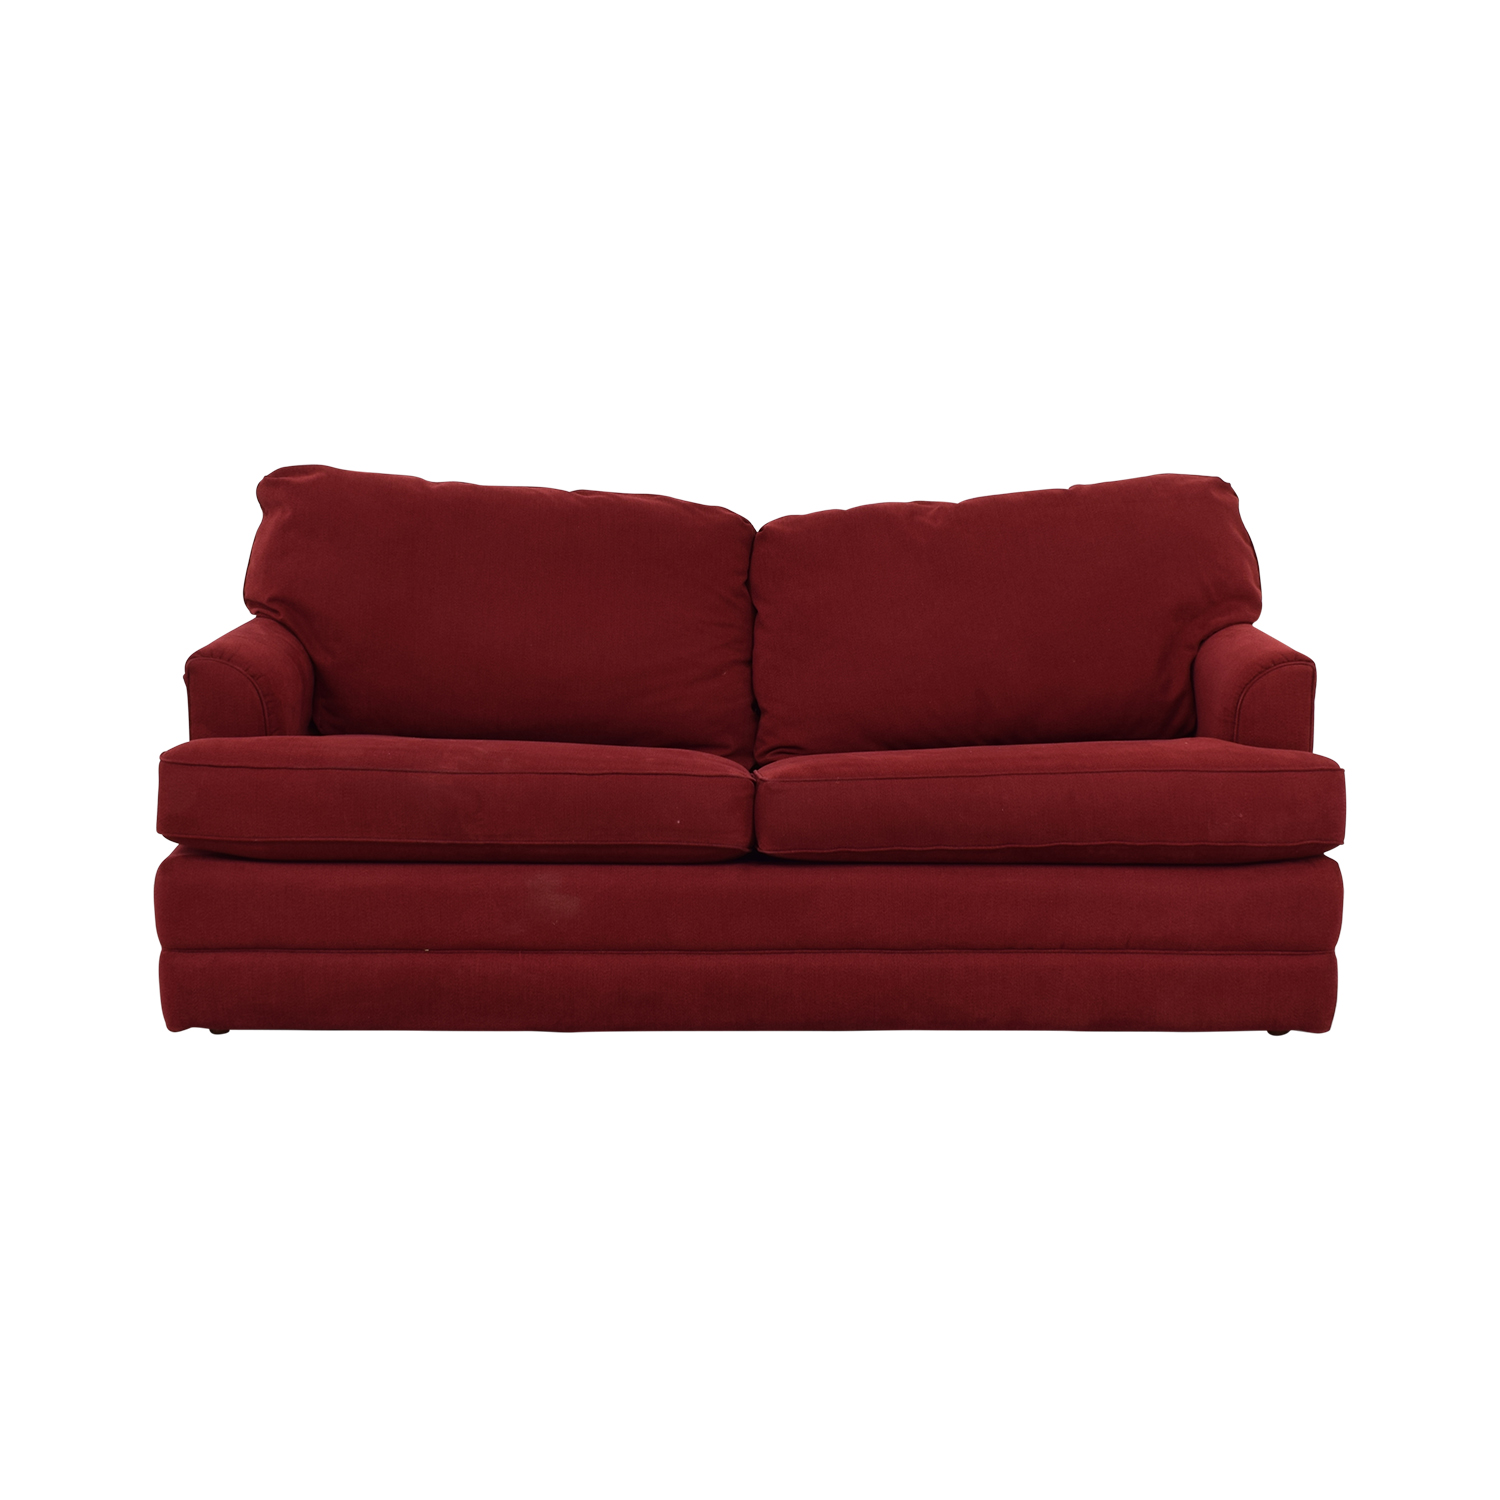 La-Z-Boy La-Z-Boy Red Convertible Queen Sleeper Sofa second hand